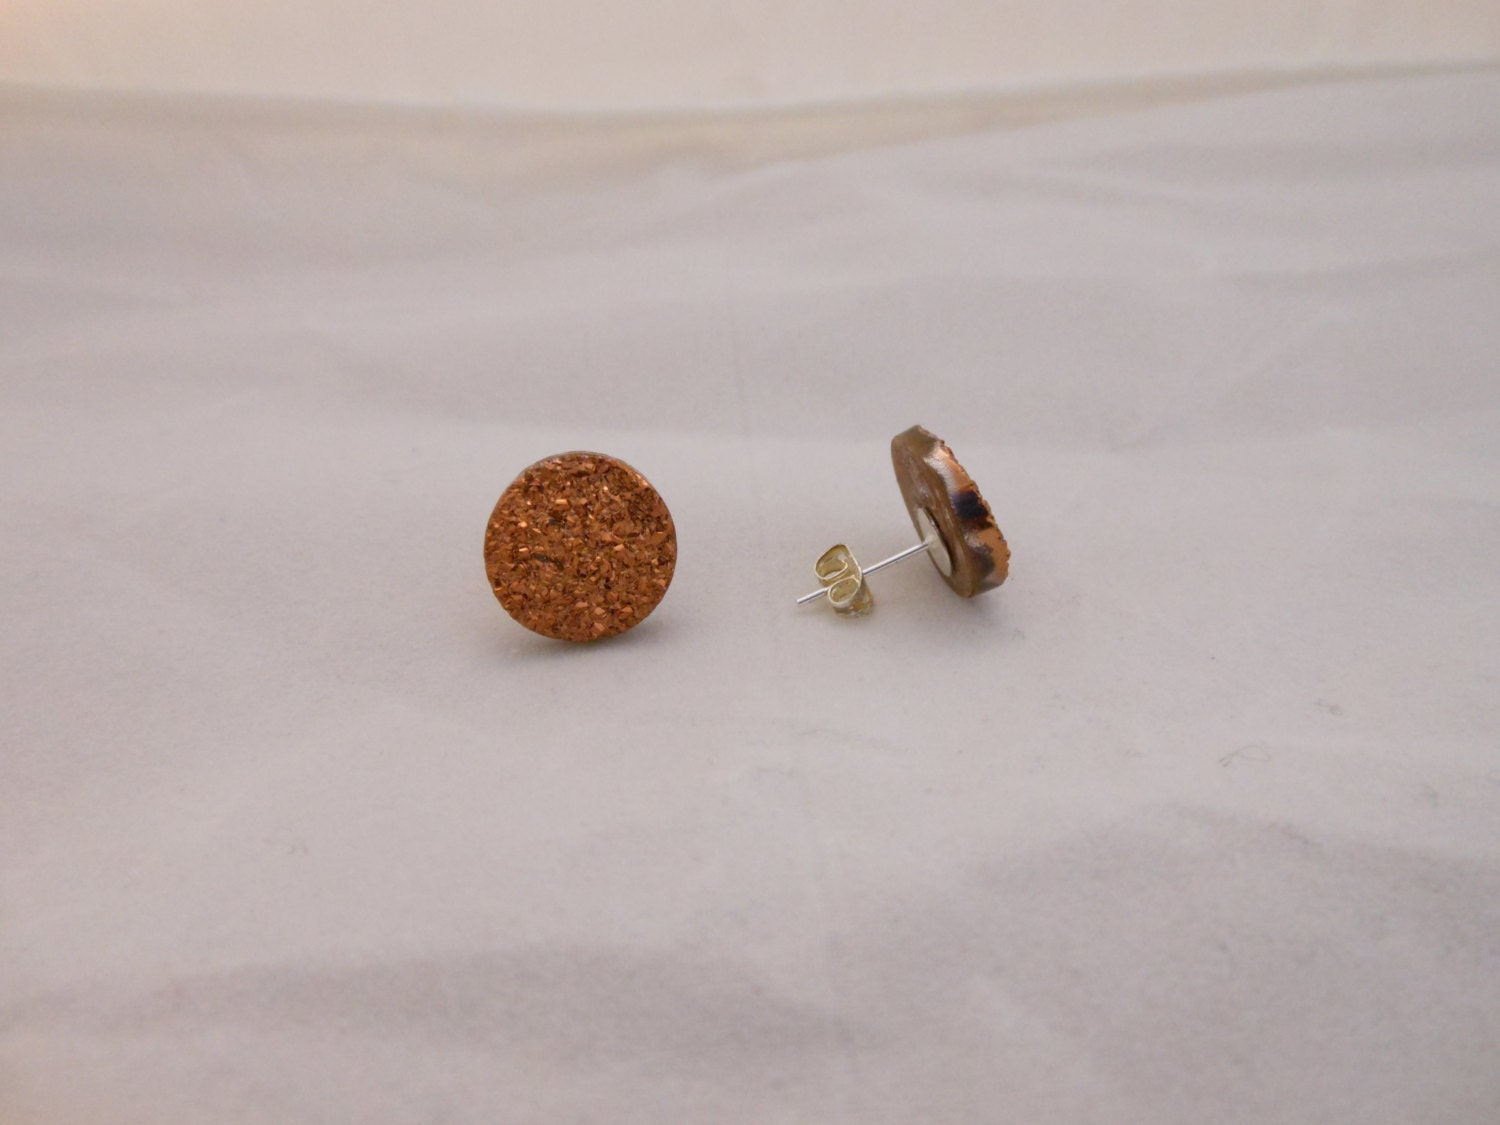 Copper colored jewelry : Copper color gem earrings